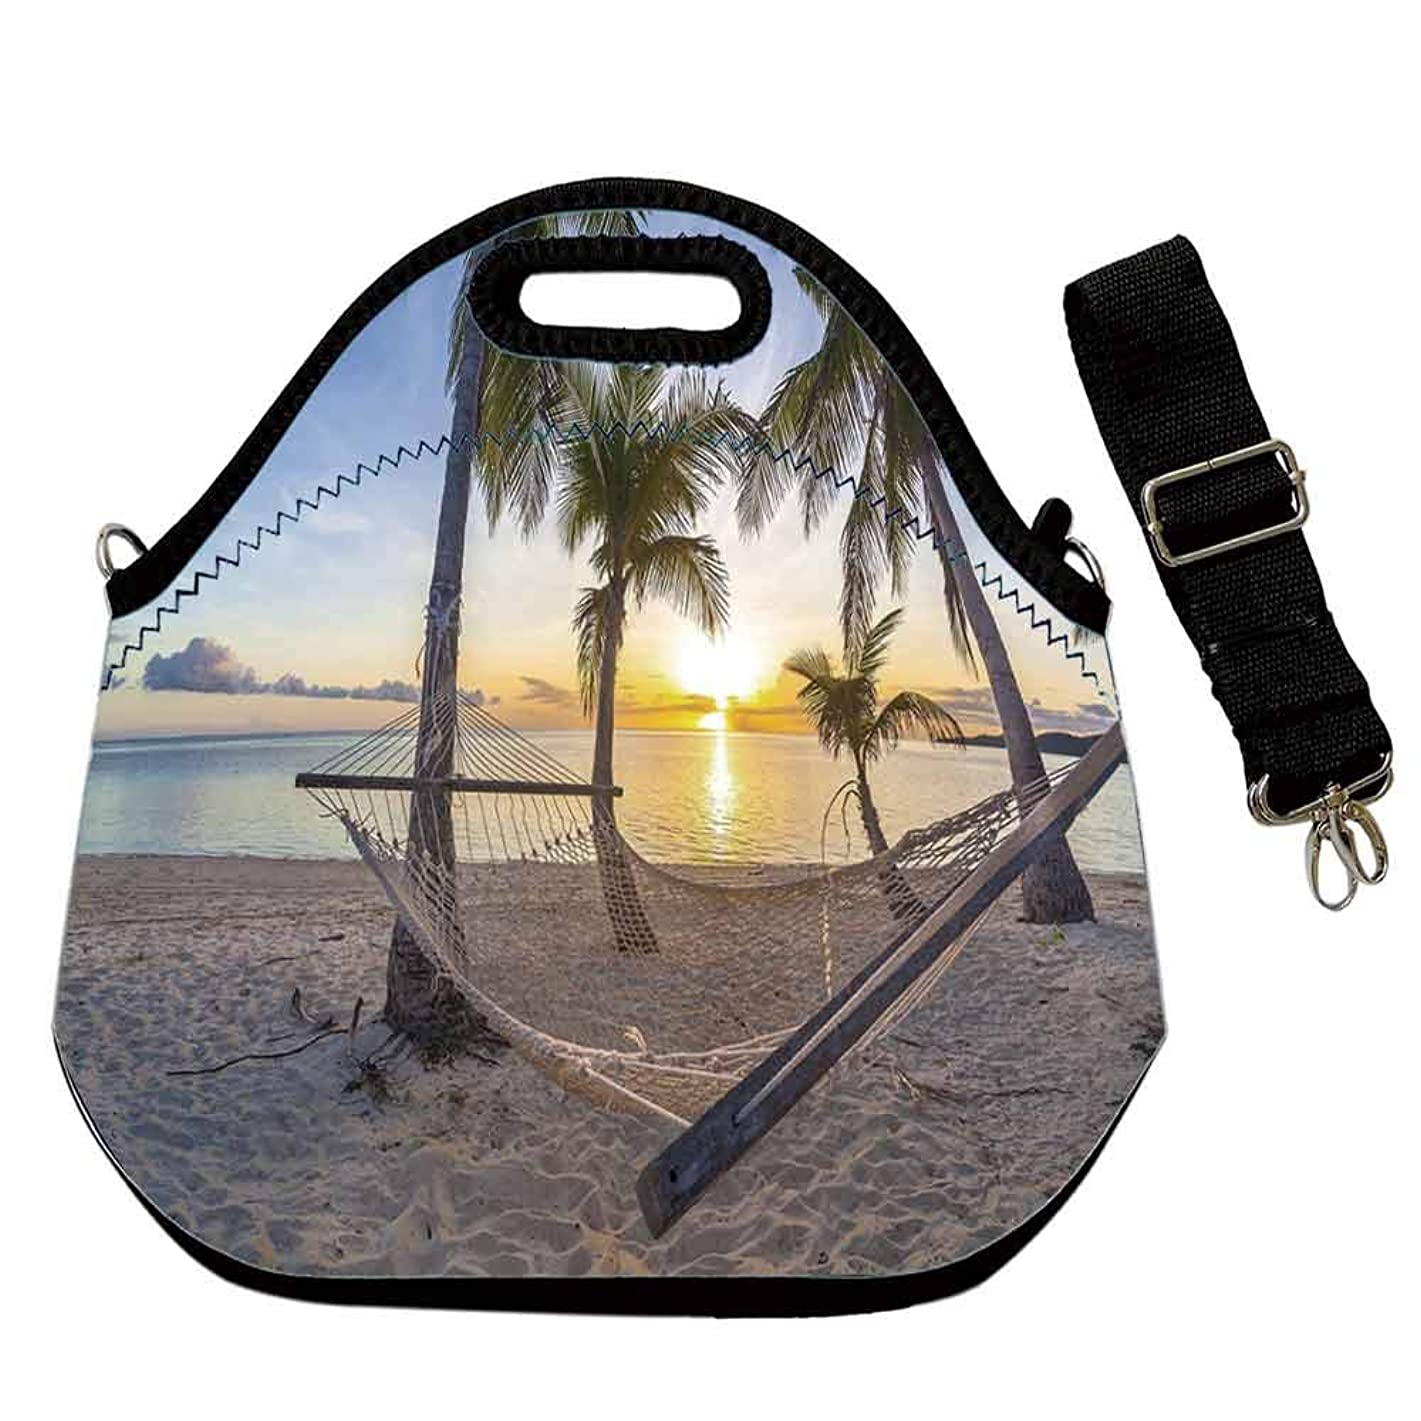 Tropical Decor Custom Neoprene Lunch Bag,Paradise Beach with Hammock and Coconut Palm Trees Horizon Coast Vacation Scenery for Lunch Trip Travel Work,With Shoulder Straps(12.6''L x 6.3''W x 12.6''H)